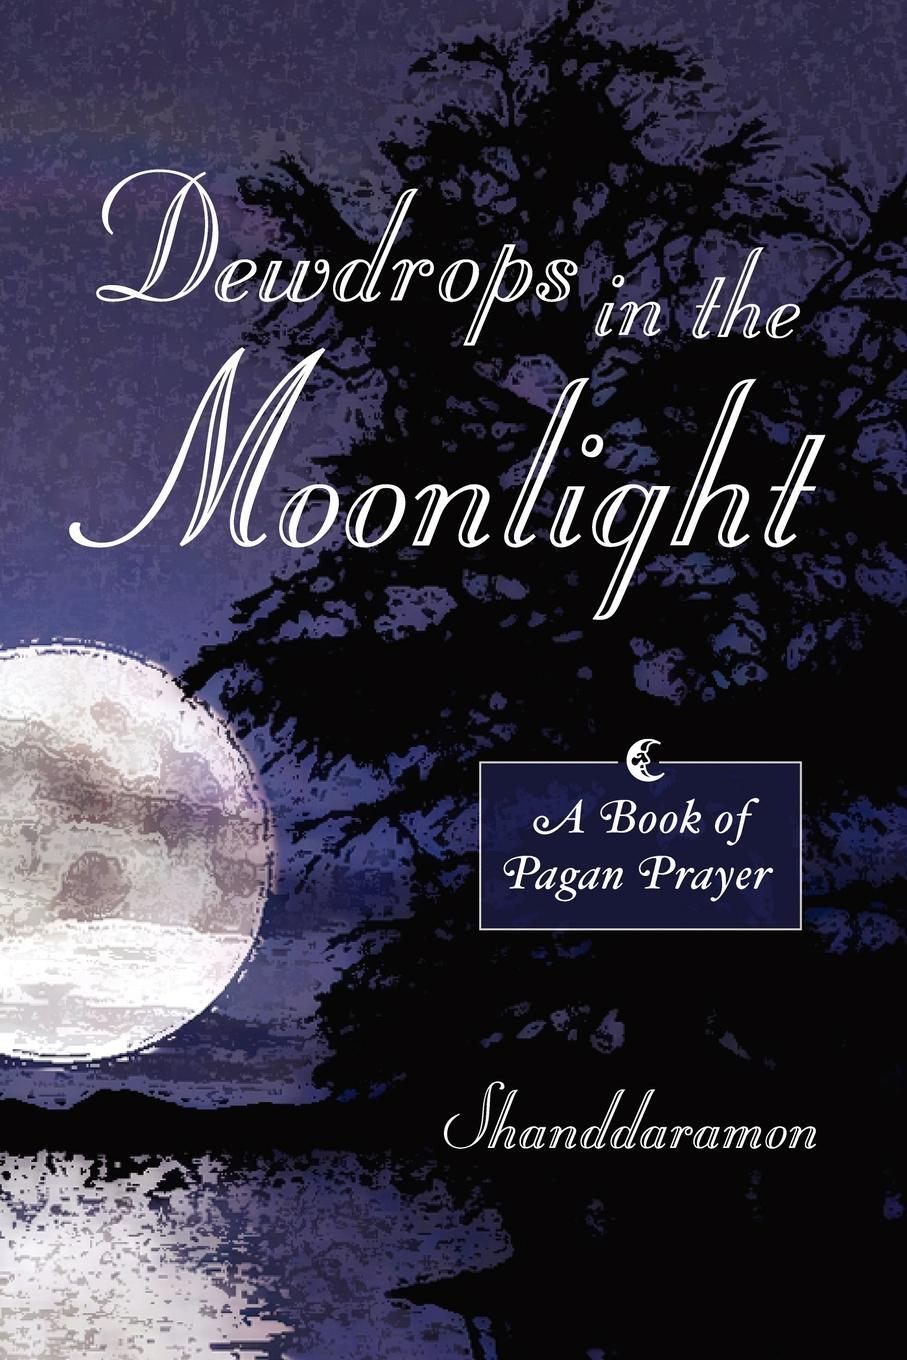 Dewdrops in the Moonlight. A Book of Pagan Prayer